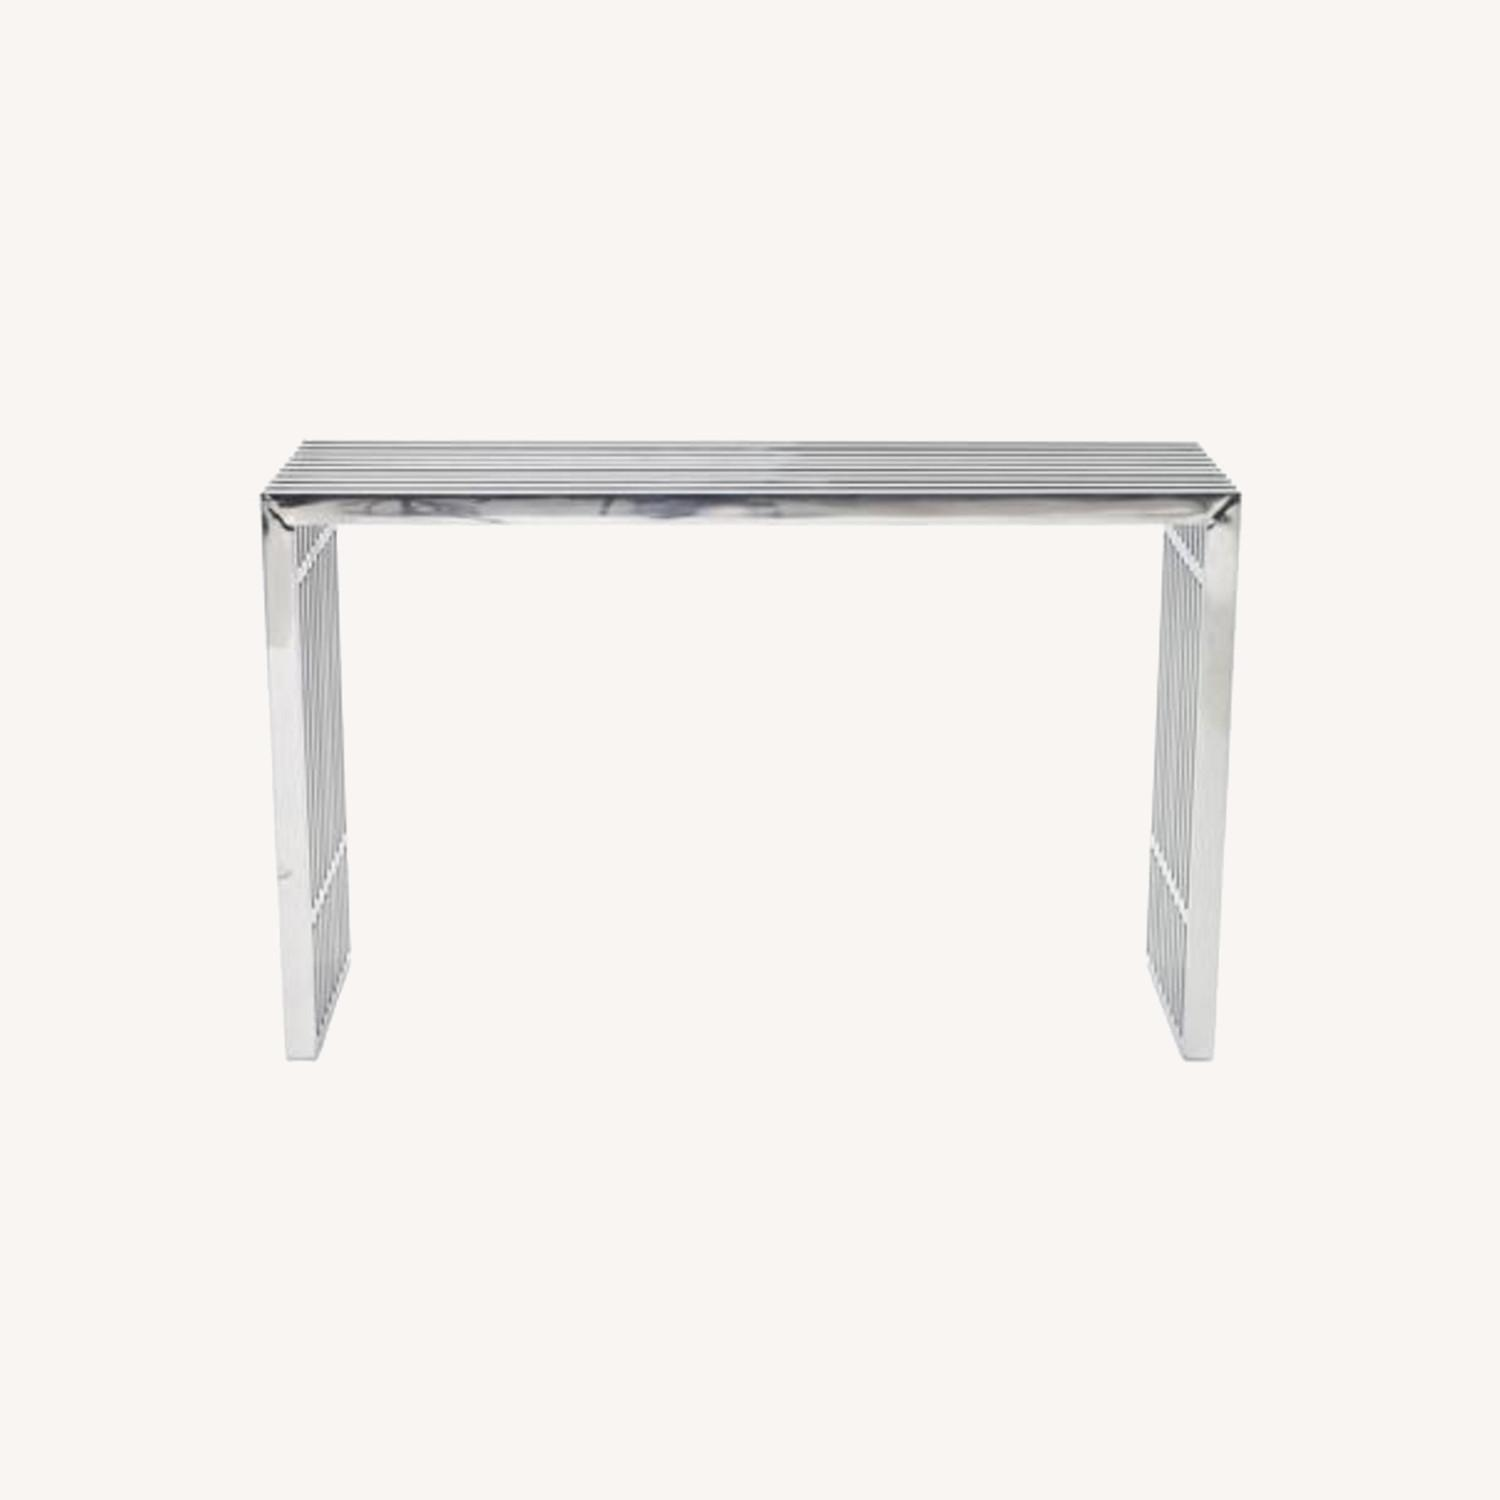 Modern Console Table In Silver Stainless Finish - image-5